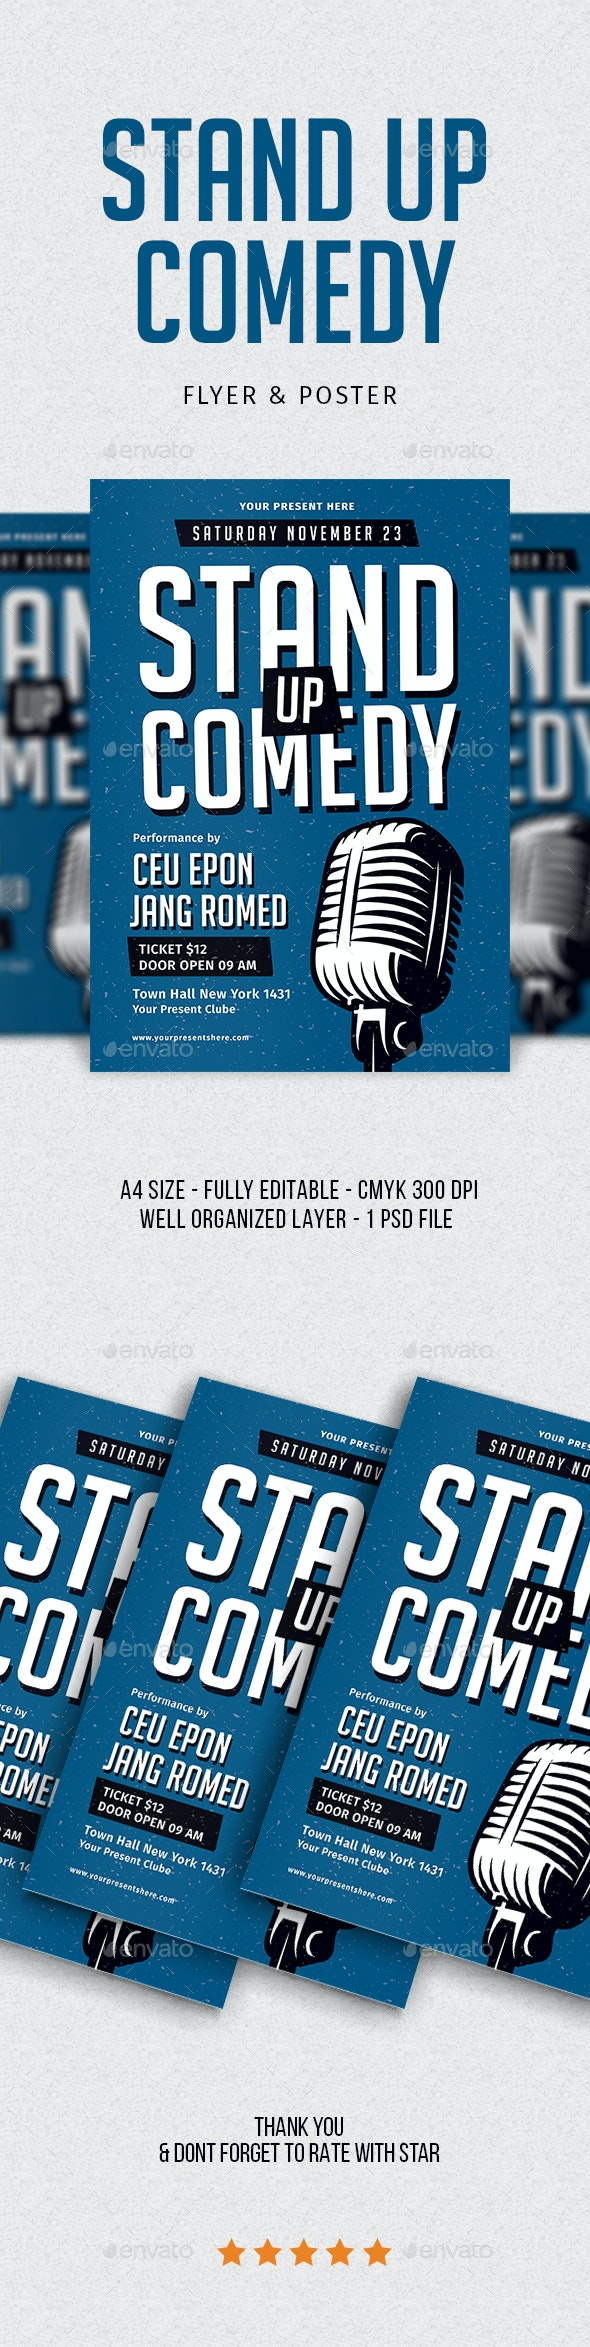 Stand Up Comedy Flyer - Flyers Print Templates